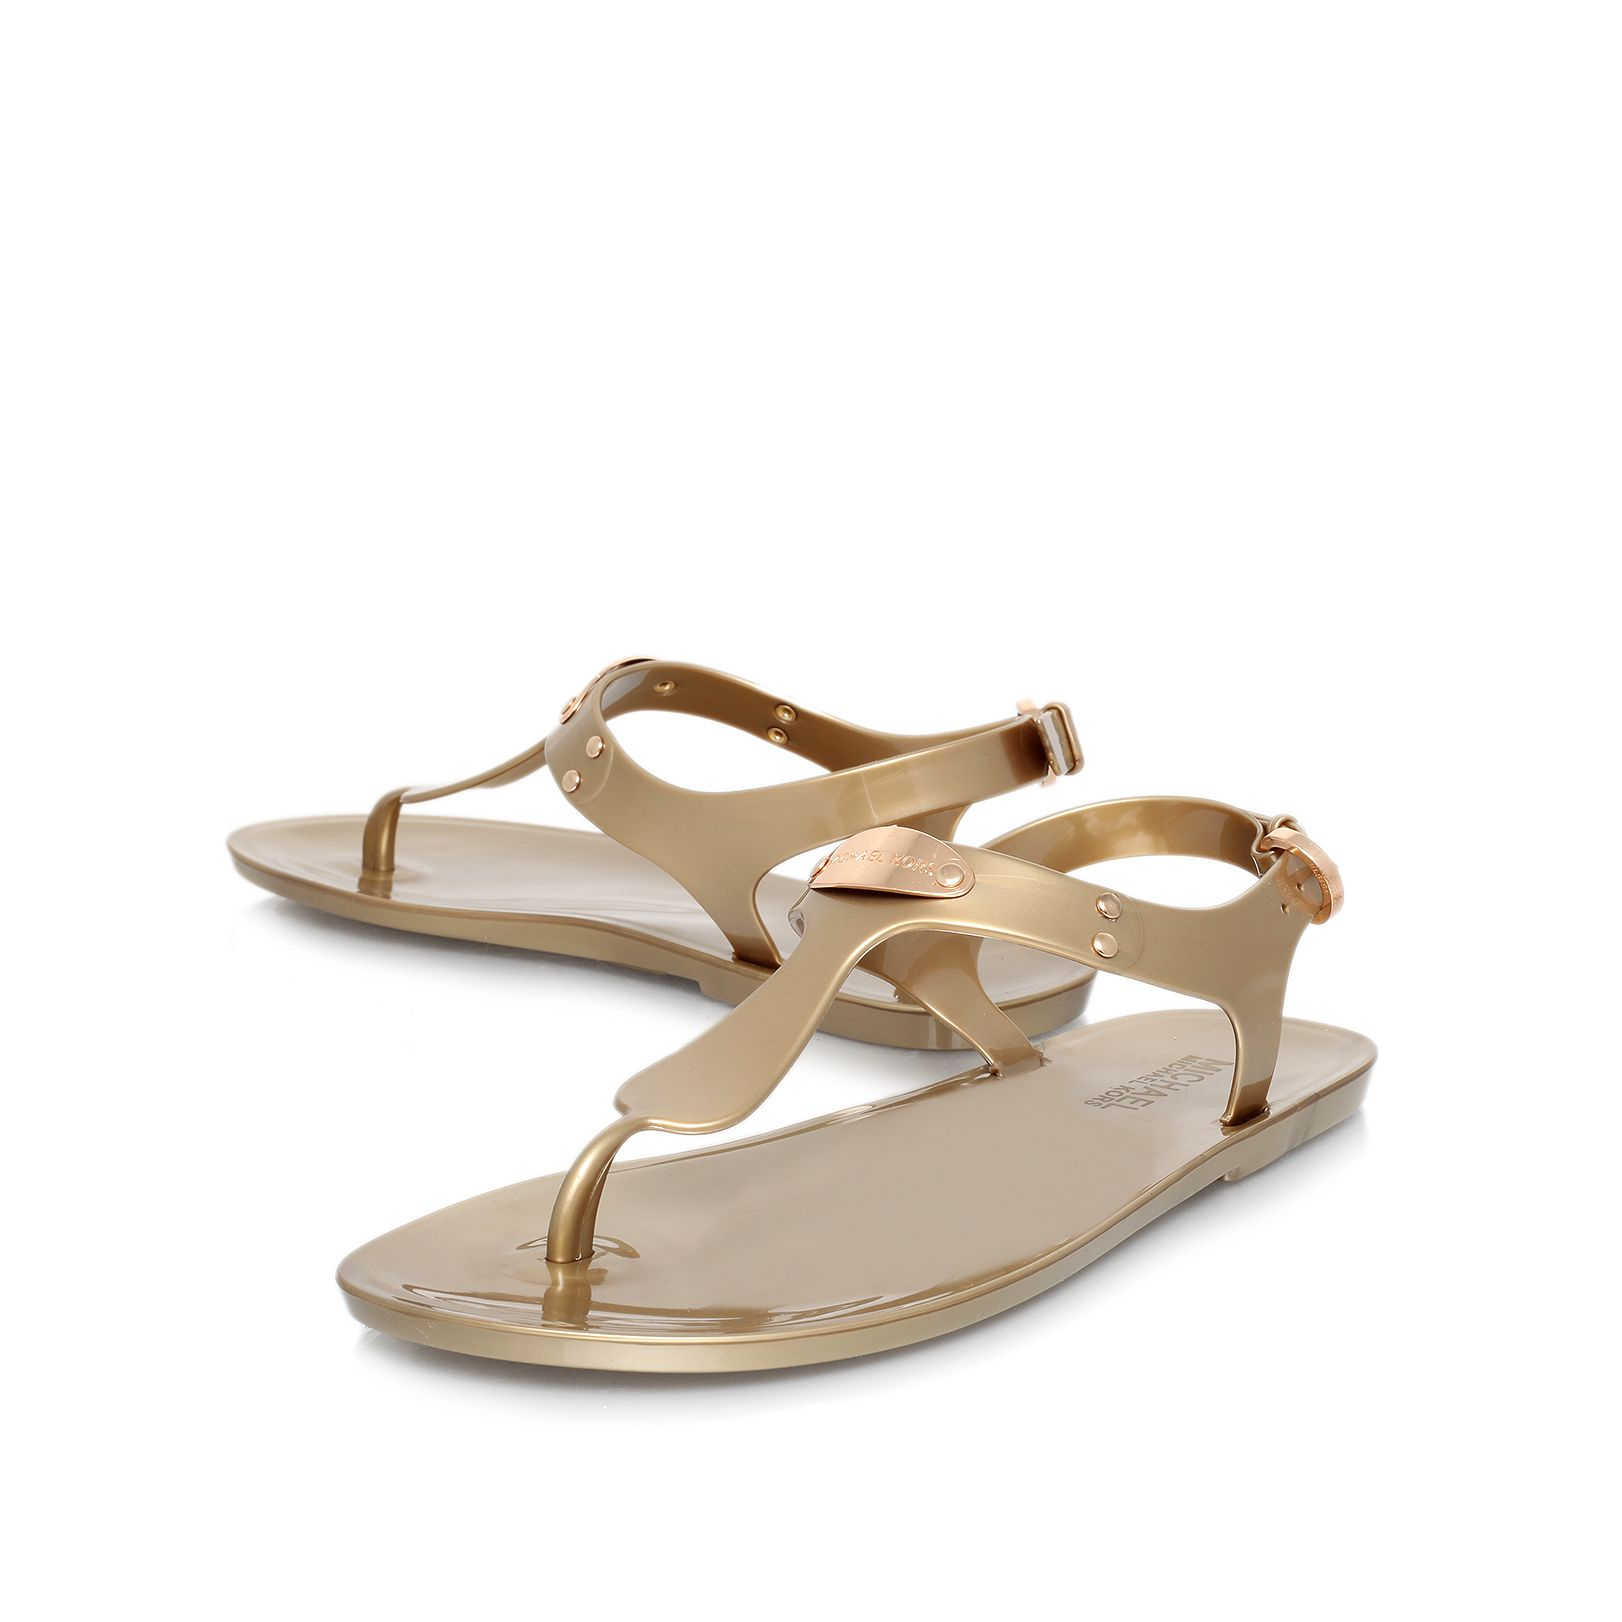 99529330646 michael kors jelly plate sandals belt men gold - Marwood ...